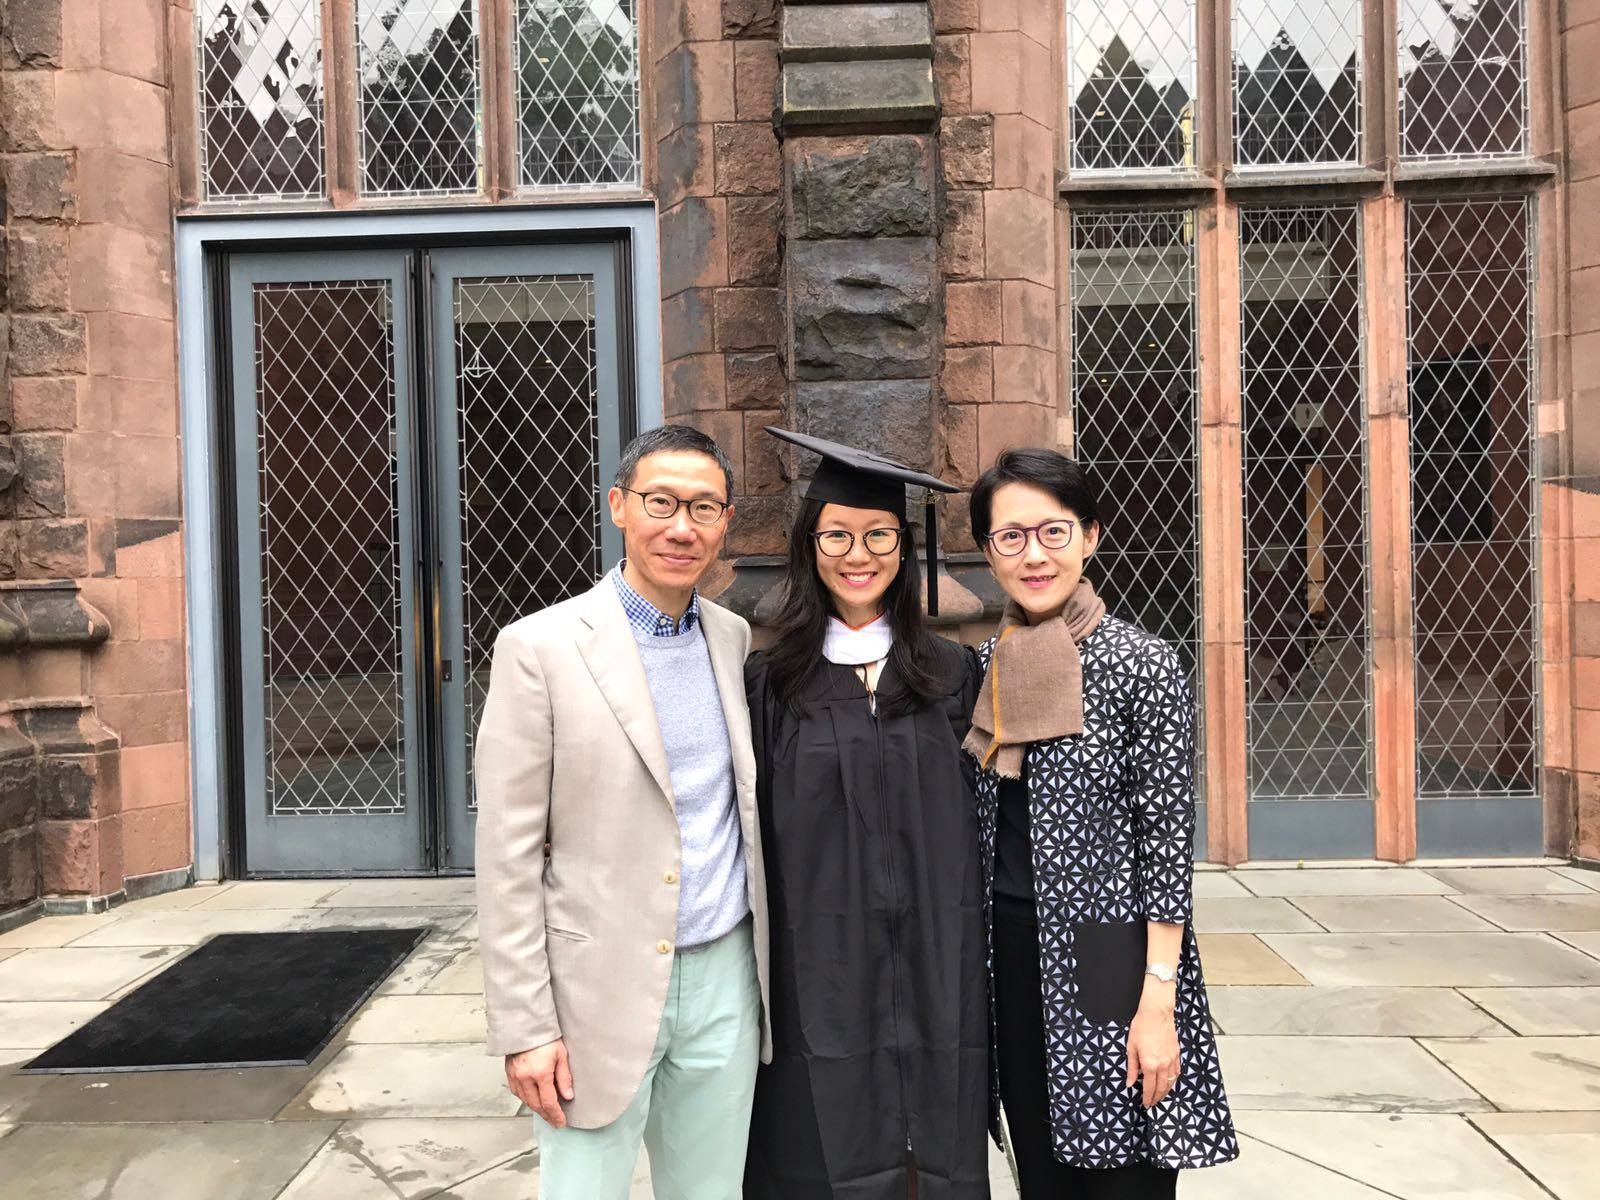 Jin Yun Chow with her family at Princeton University.